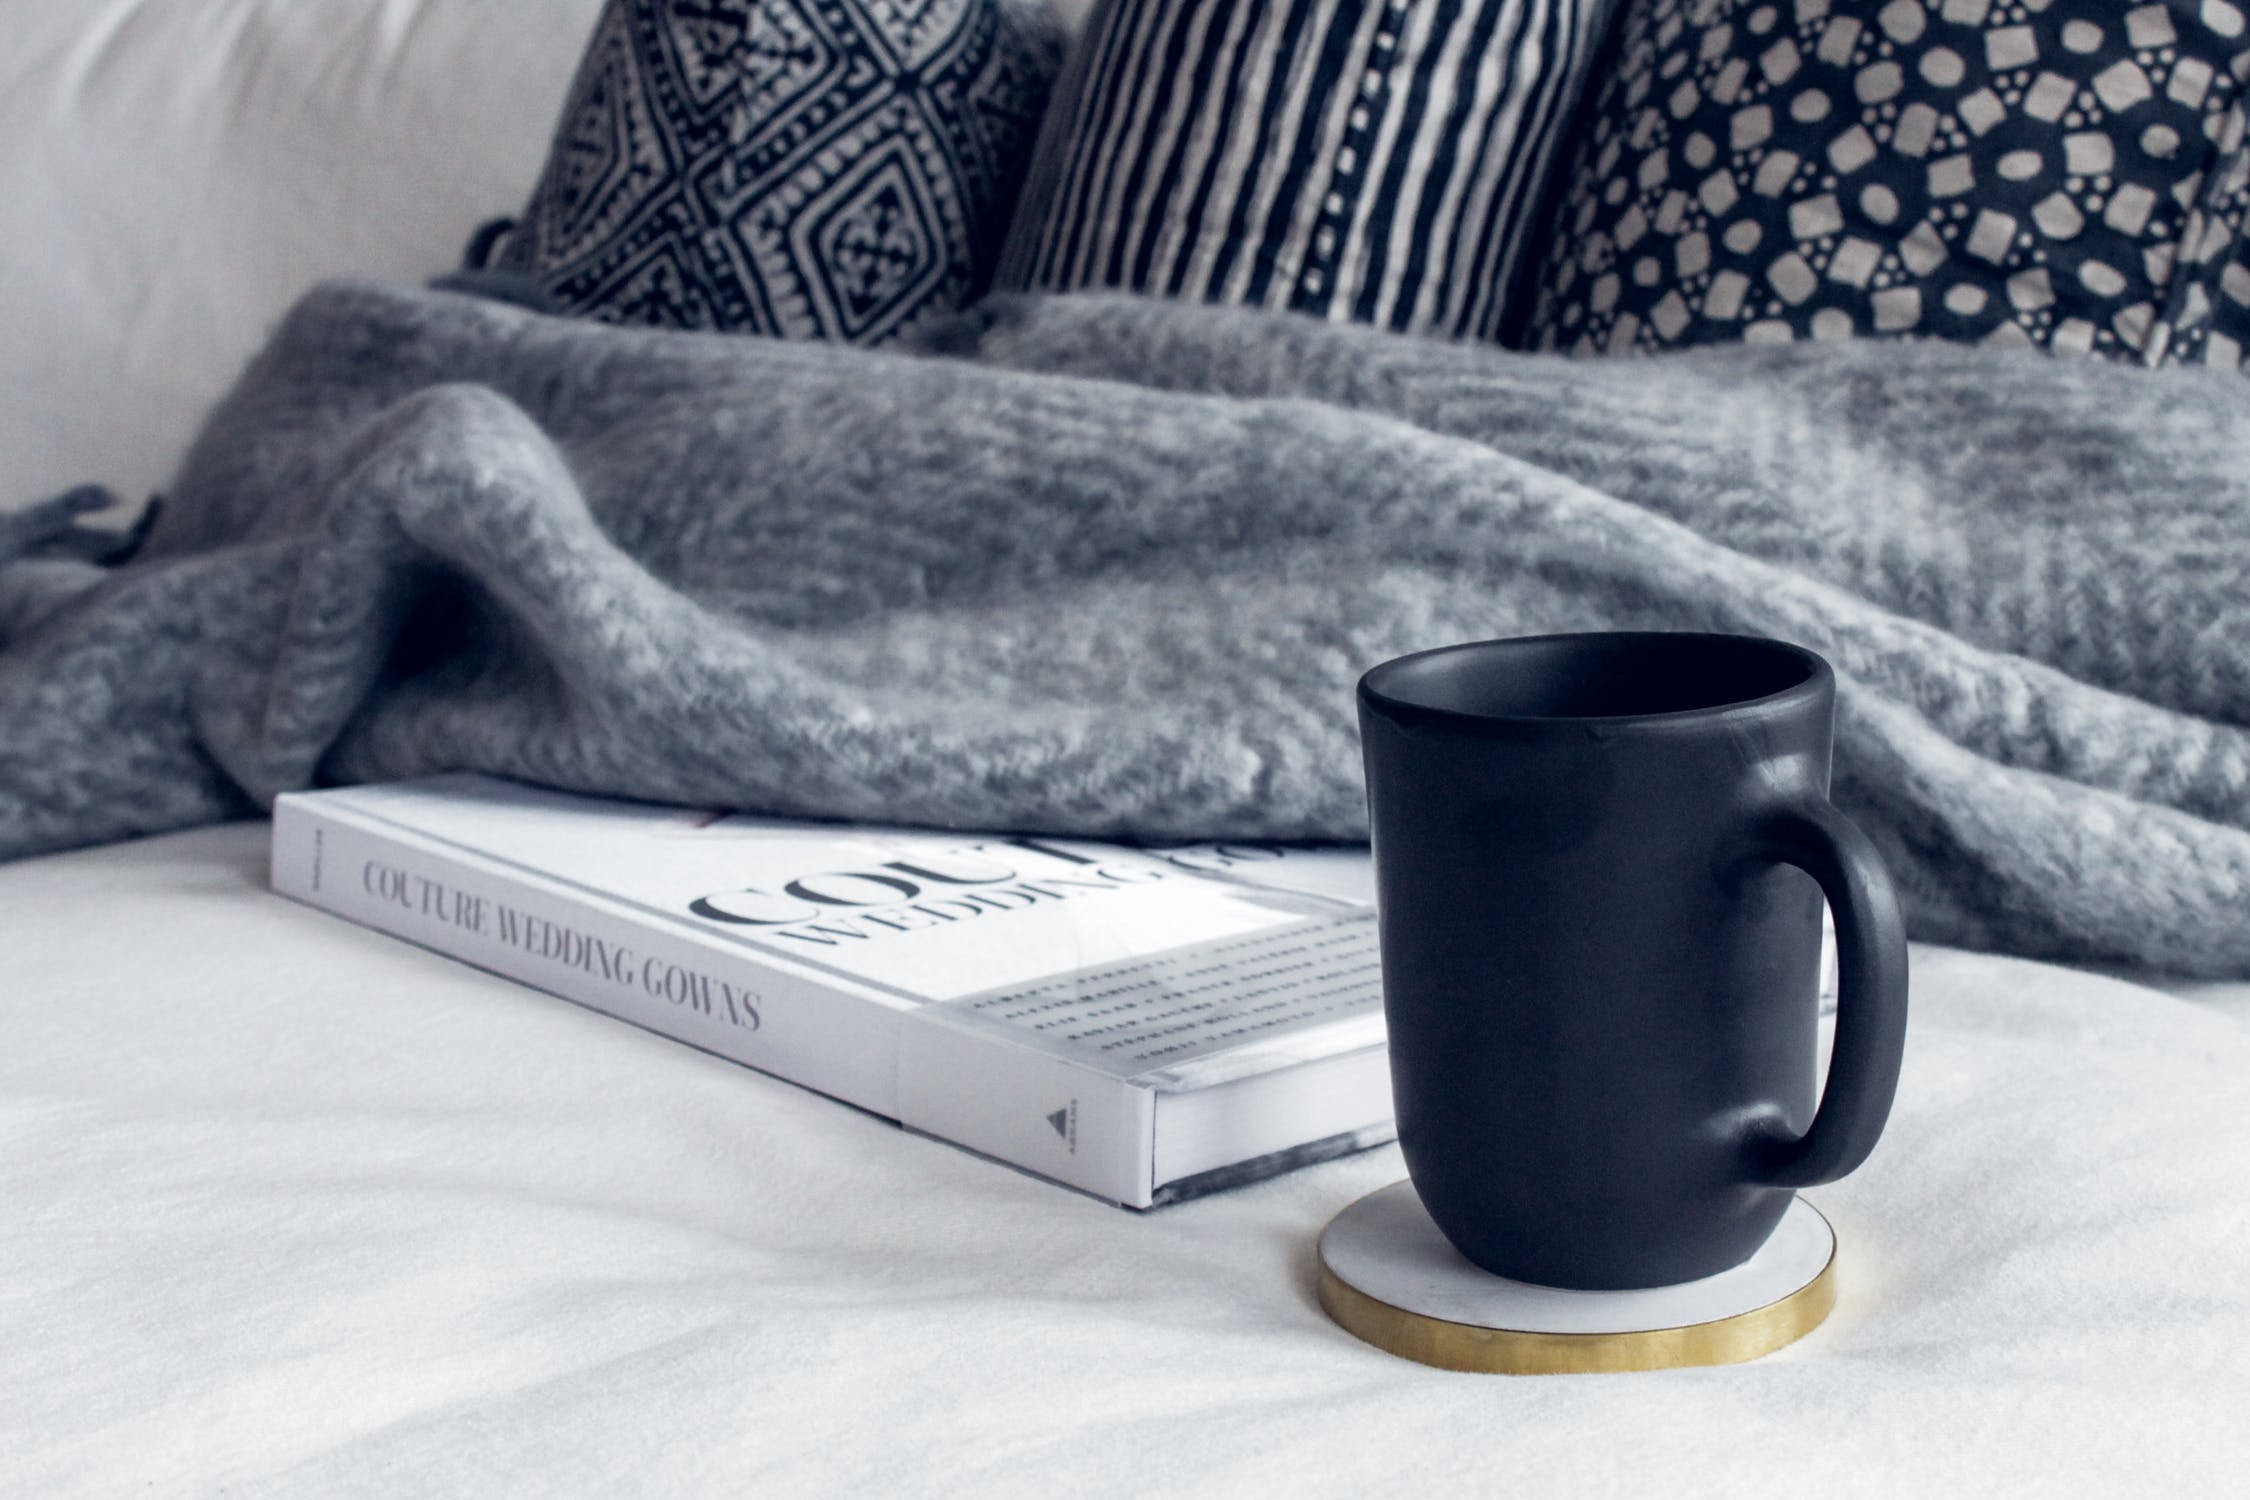 List of Research Done on Weighted Blankets [UPDATED]